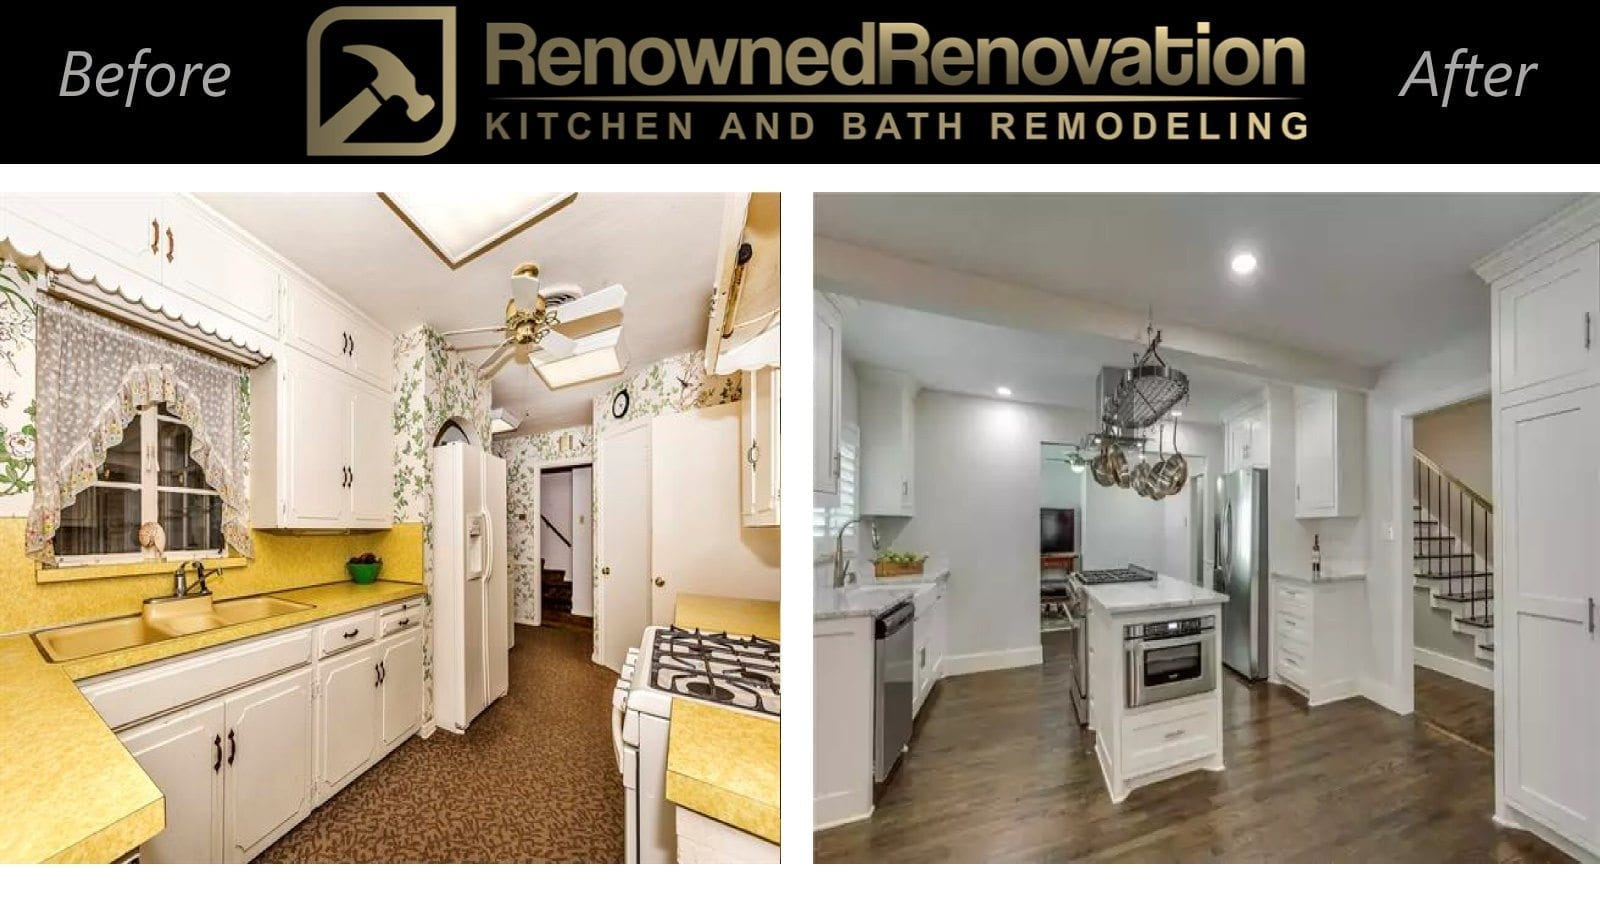 Before and after remodeling pictures renowned renovation for Kitchen remodeling dallas tx